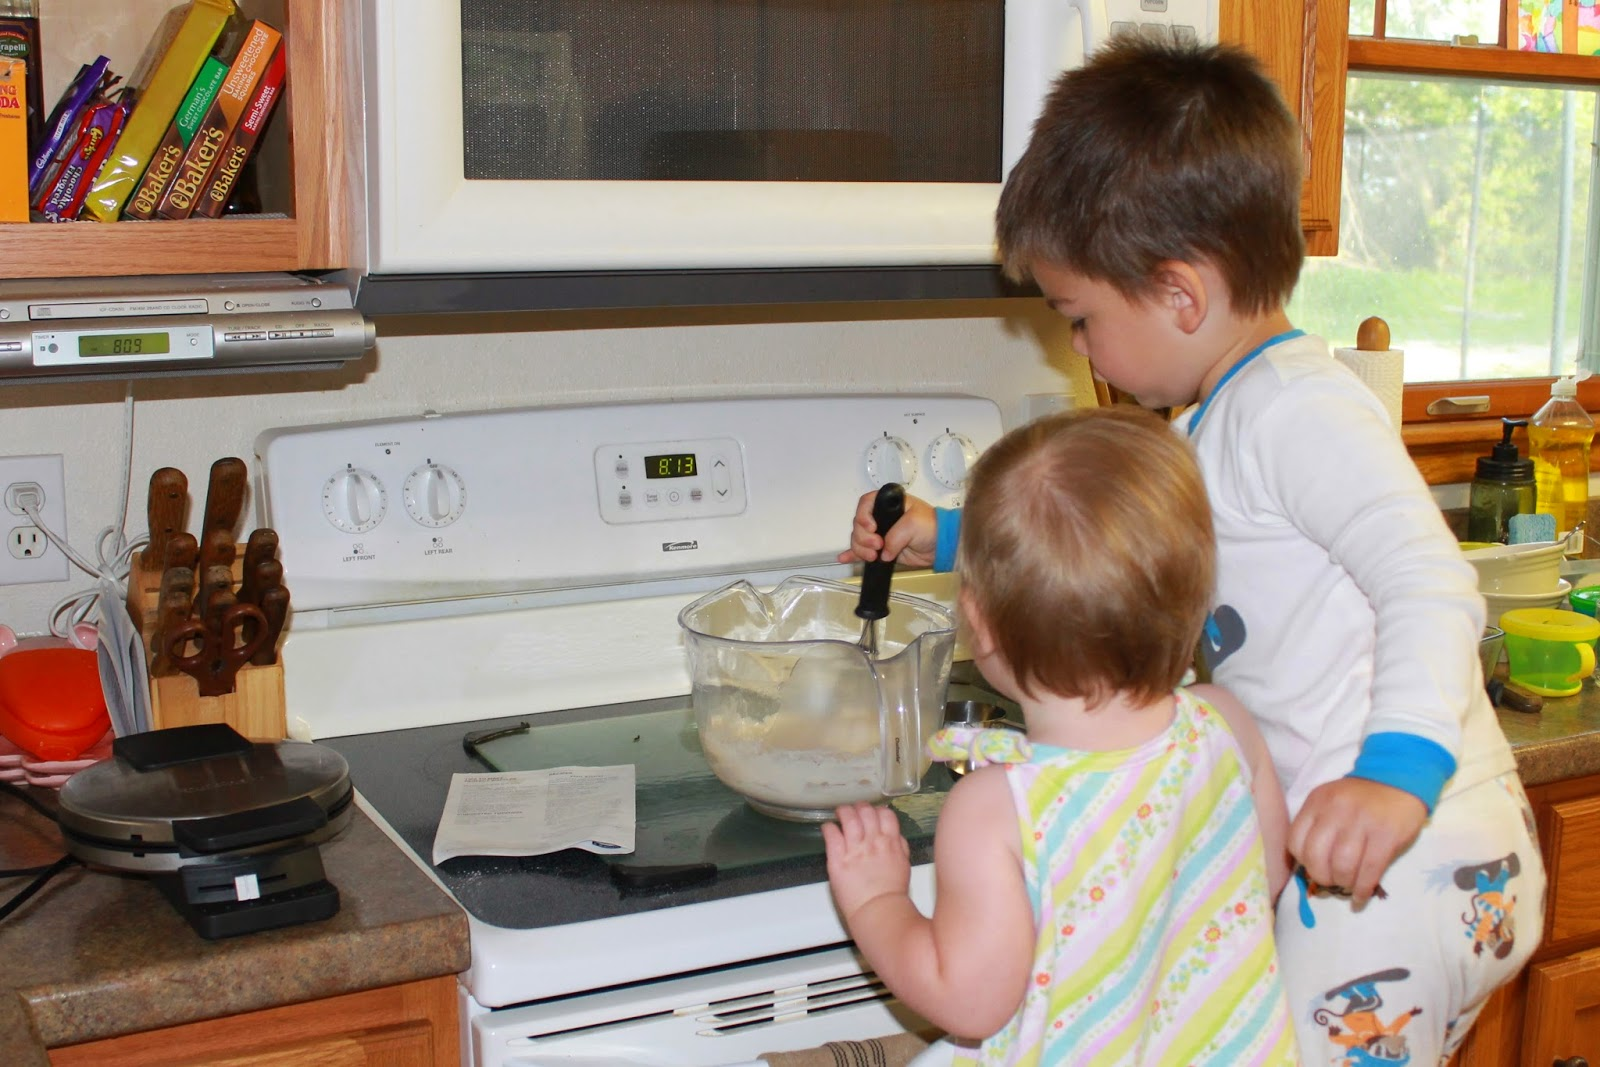 Bake something special with your kids on a rainy day